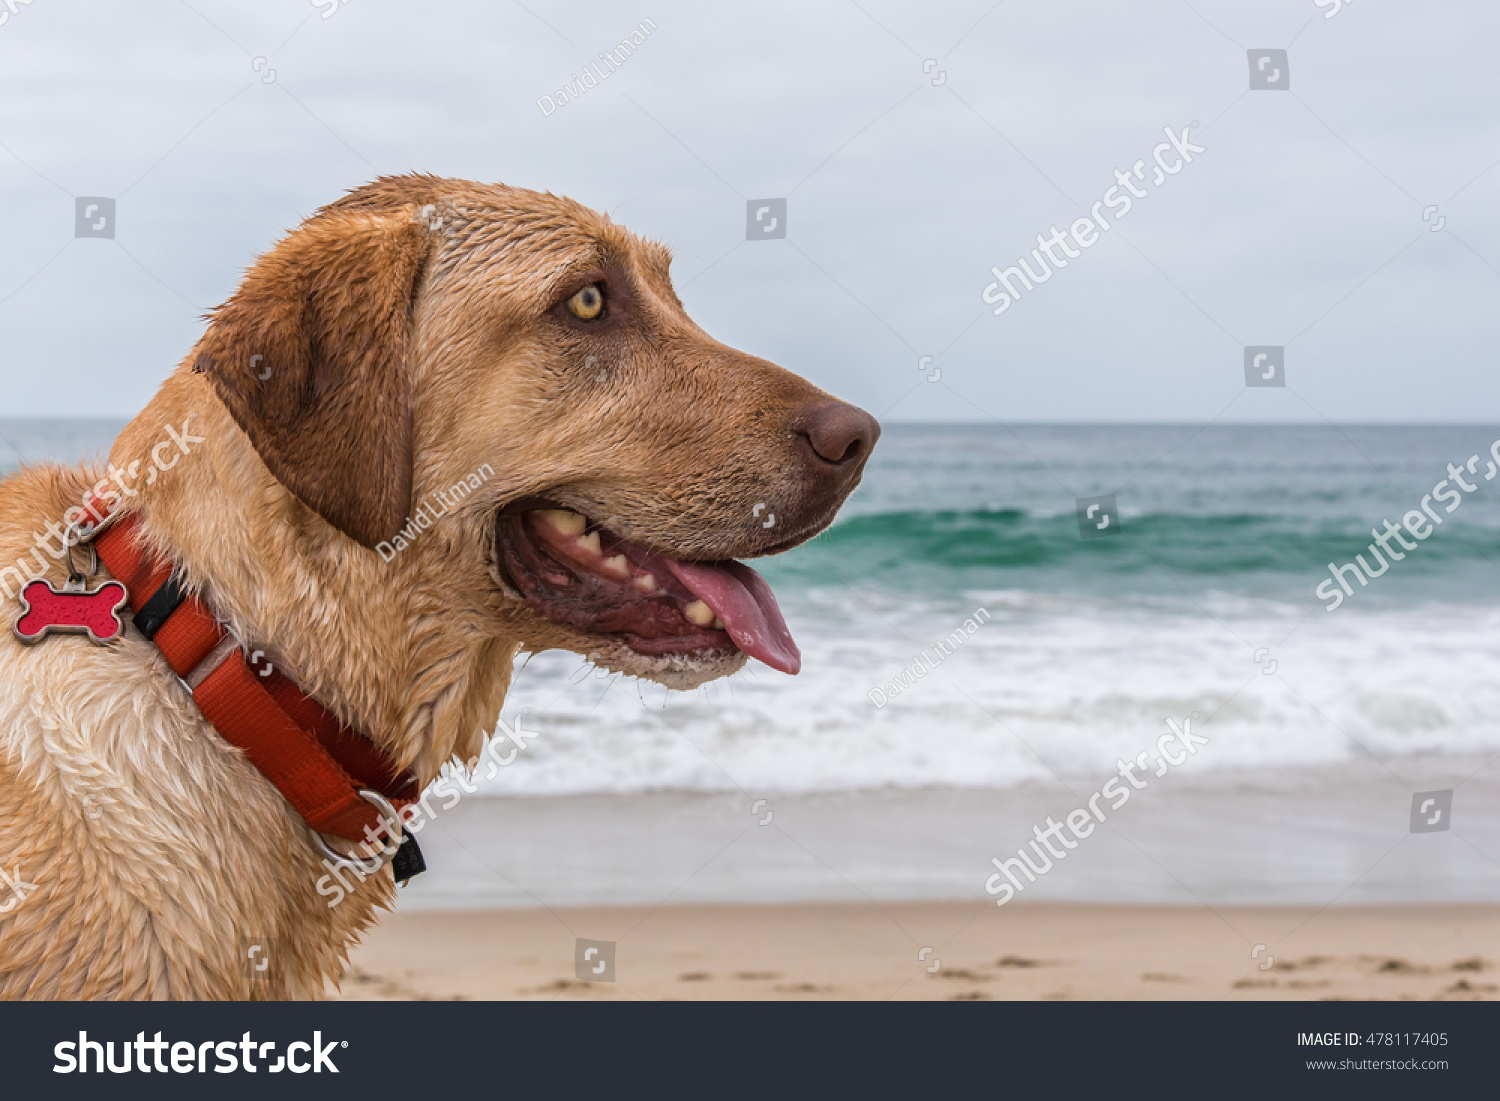 Close up portrait of a beautiful dog (yellow Labrador retriever) posing on the beach in Monterey California on a summer day as the waves splash in the background. Copy space.  Collar and dog tag.